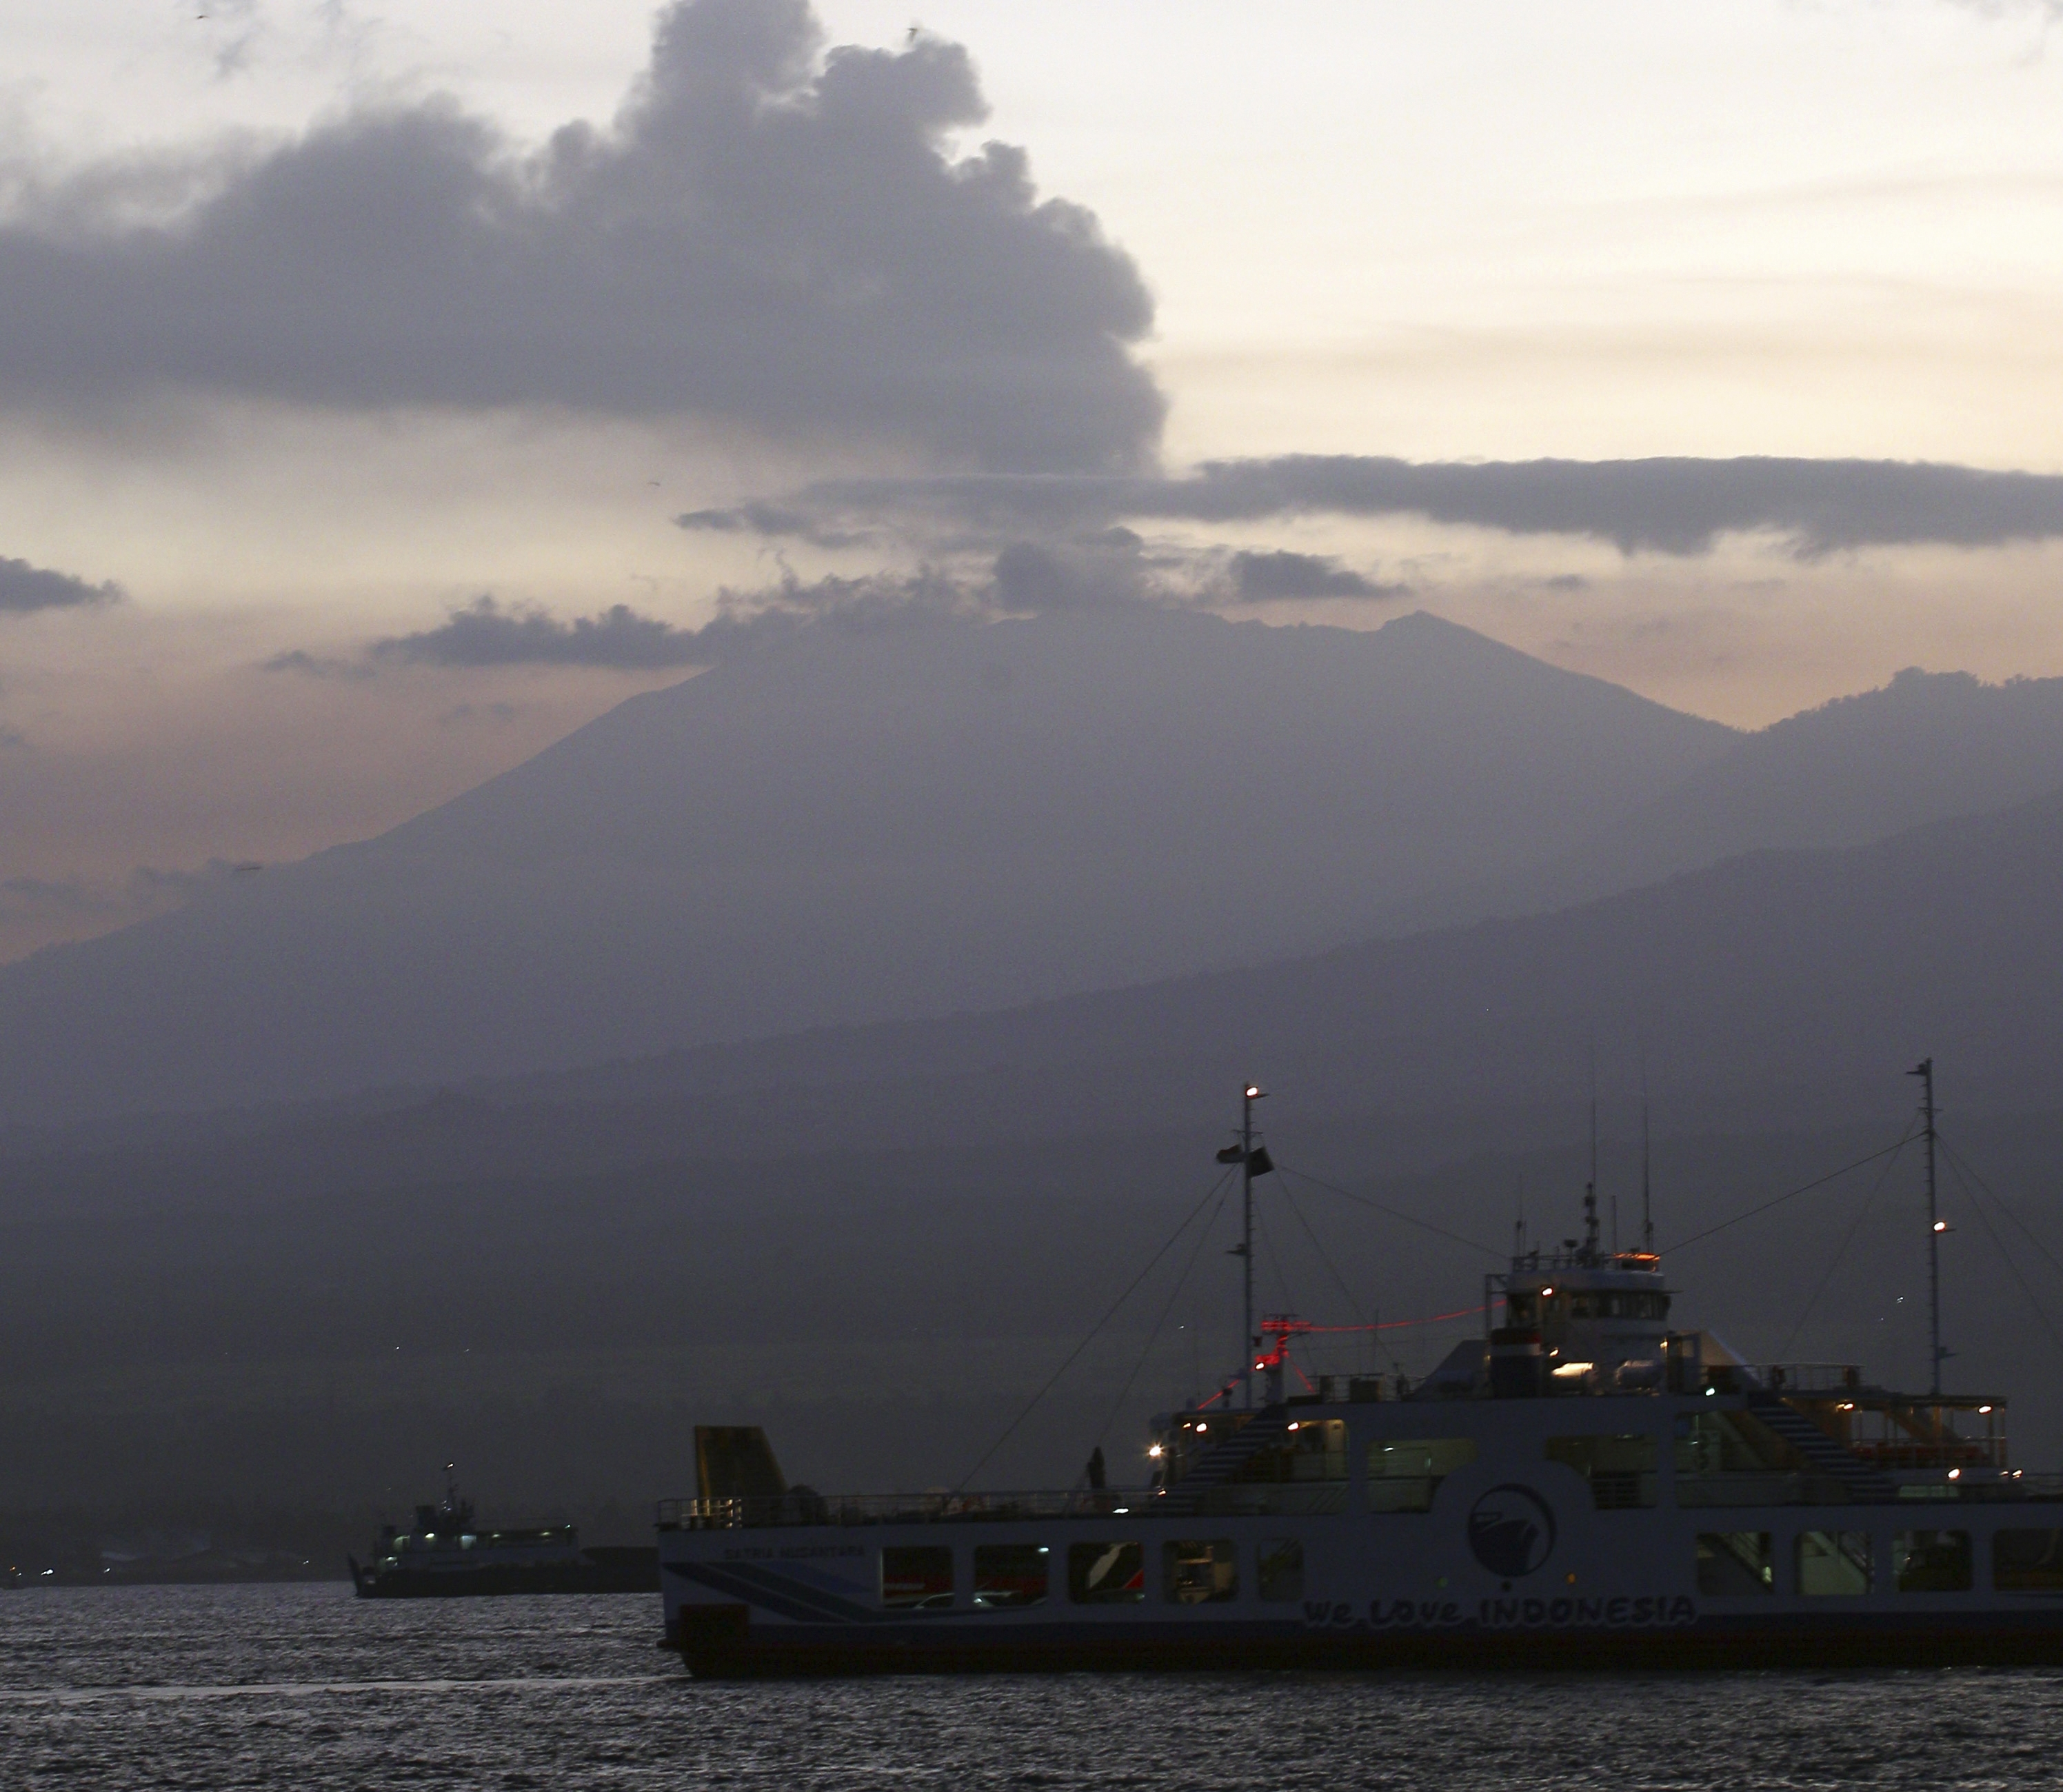 A ferry boat crosses the Bali Strait to carry Indonesians to Ketapang port, East Java, from Gilimanuk port, West Bali, Indonesia as Mount Raung spews volcanic smoke, Sunday, July 12, 2015. Ash spewing from the volcano sparked chaos for holidaymakers as airports closed and international airlines canceled flights to tourist hotspot Bali, stranding thousands. Photo: AP